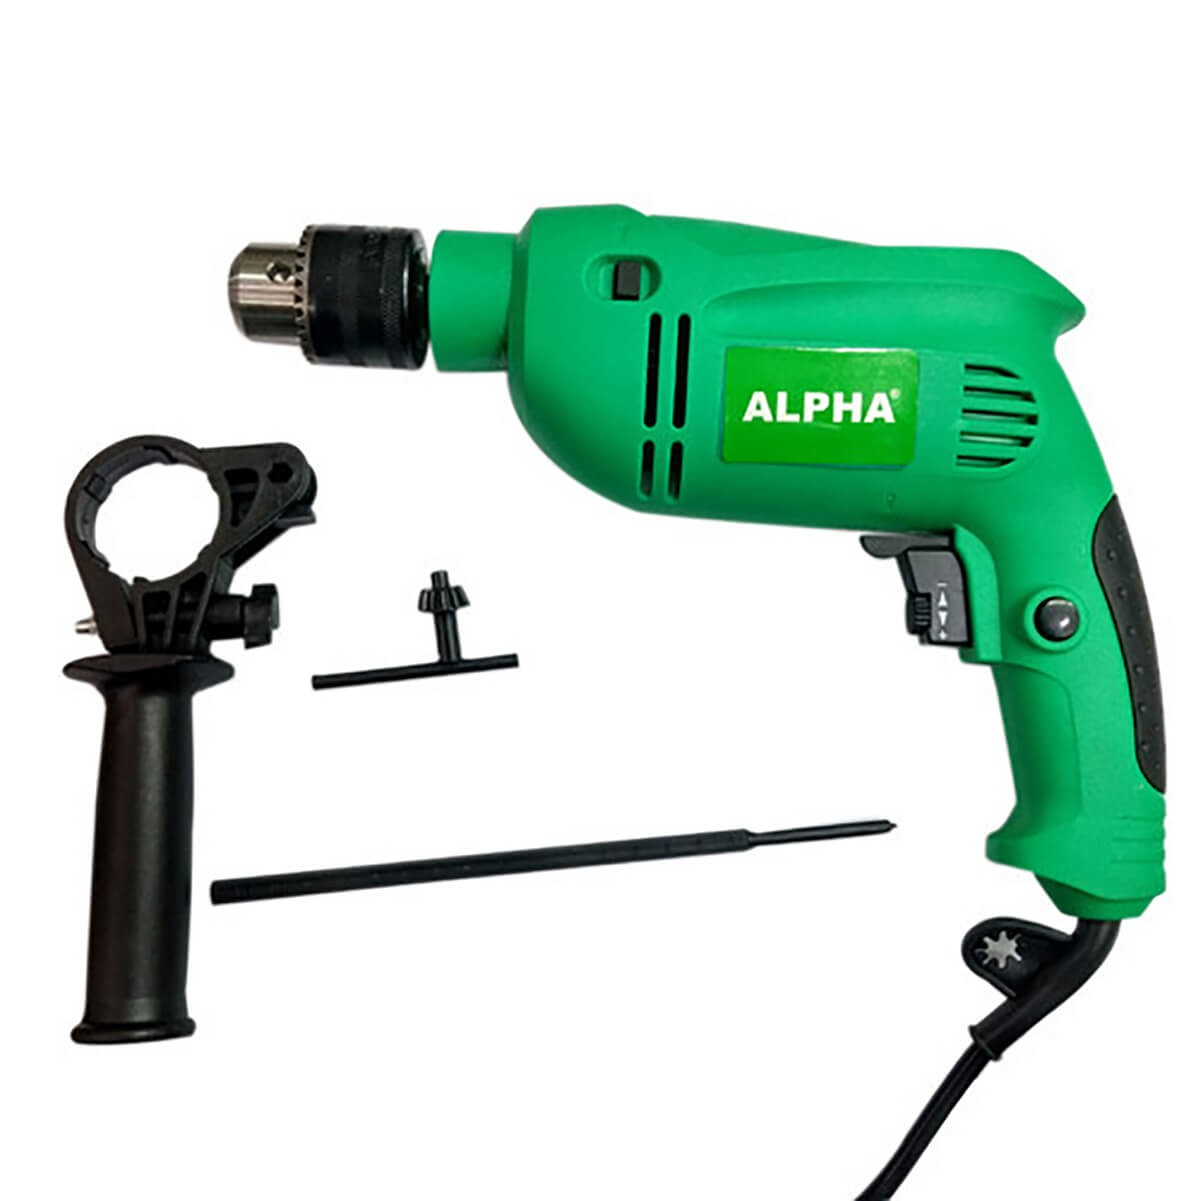 Alpha Impact Drill A6136 Metal Rotating Handle Hammering Home